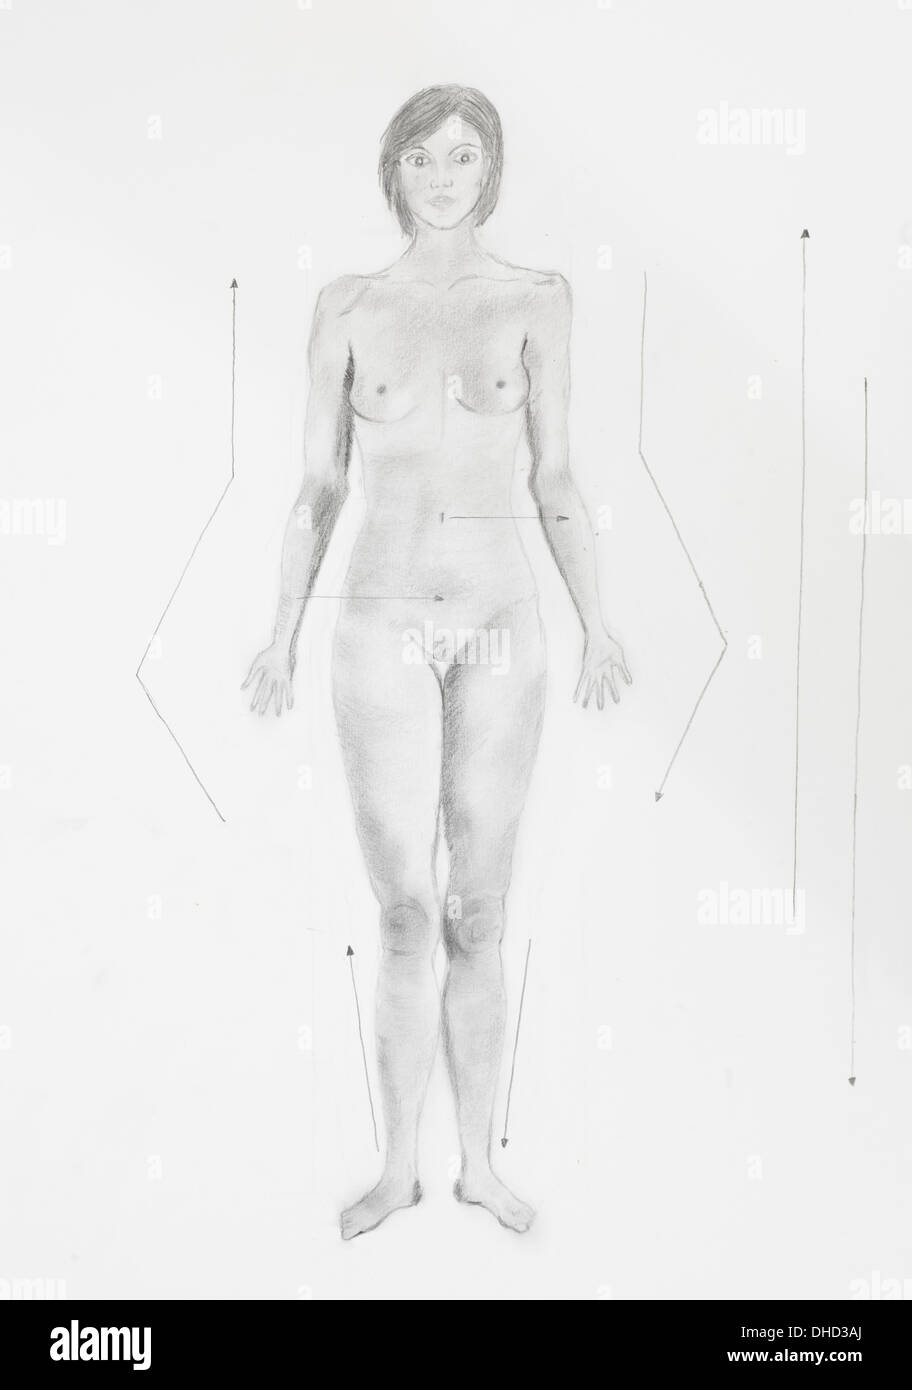 Woman Anatomy Sketch Stock Photos & Woman Anatomy Sketch Stock ...